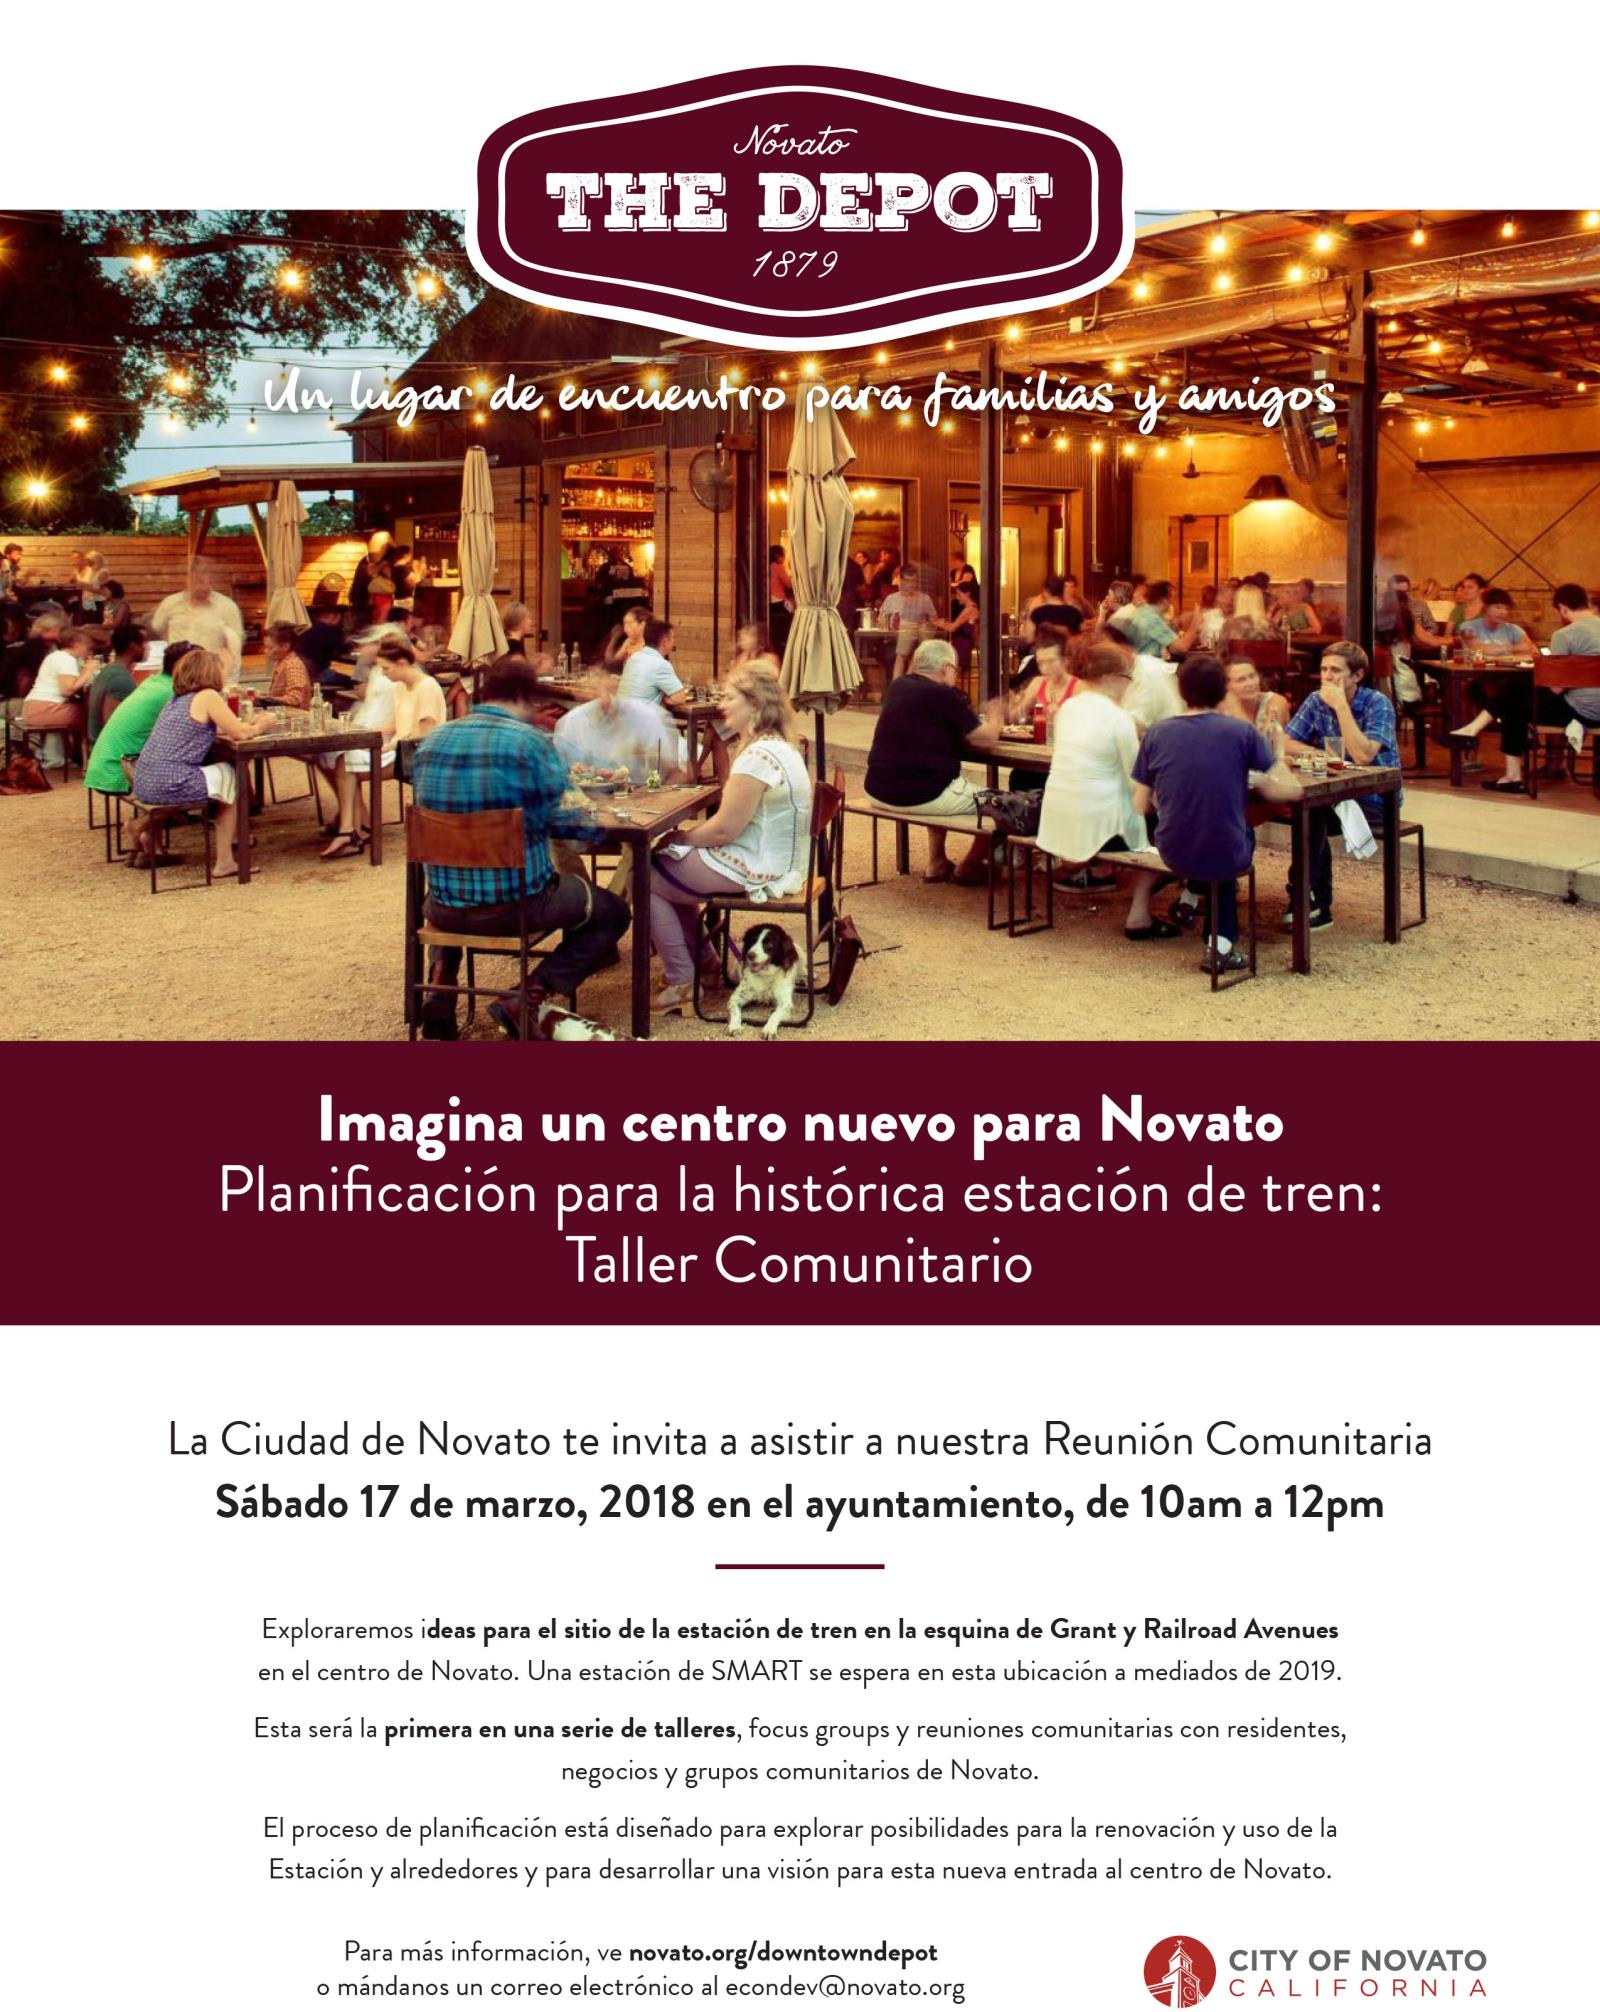 Image of depot flyer in spanish